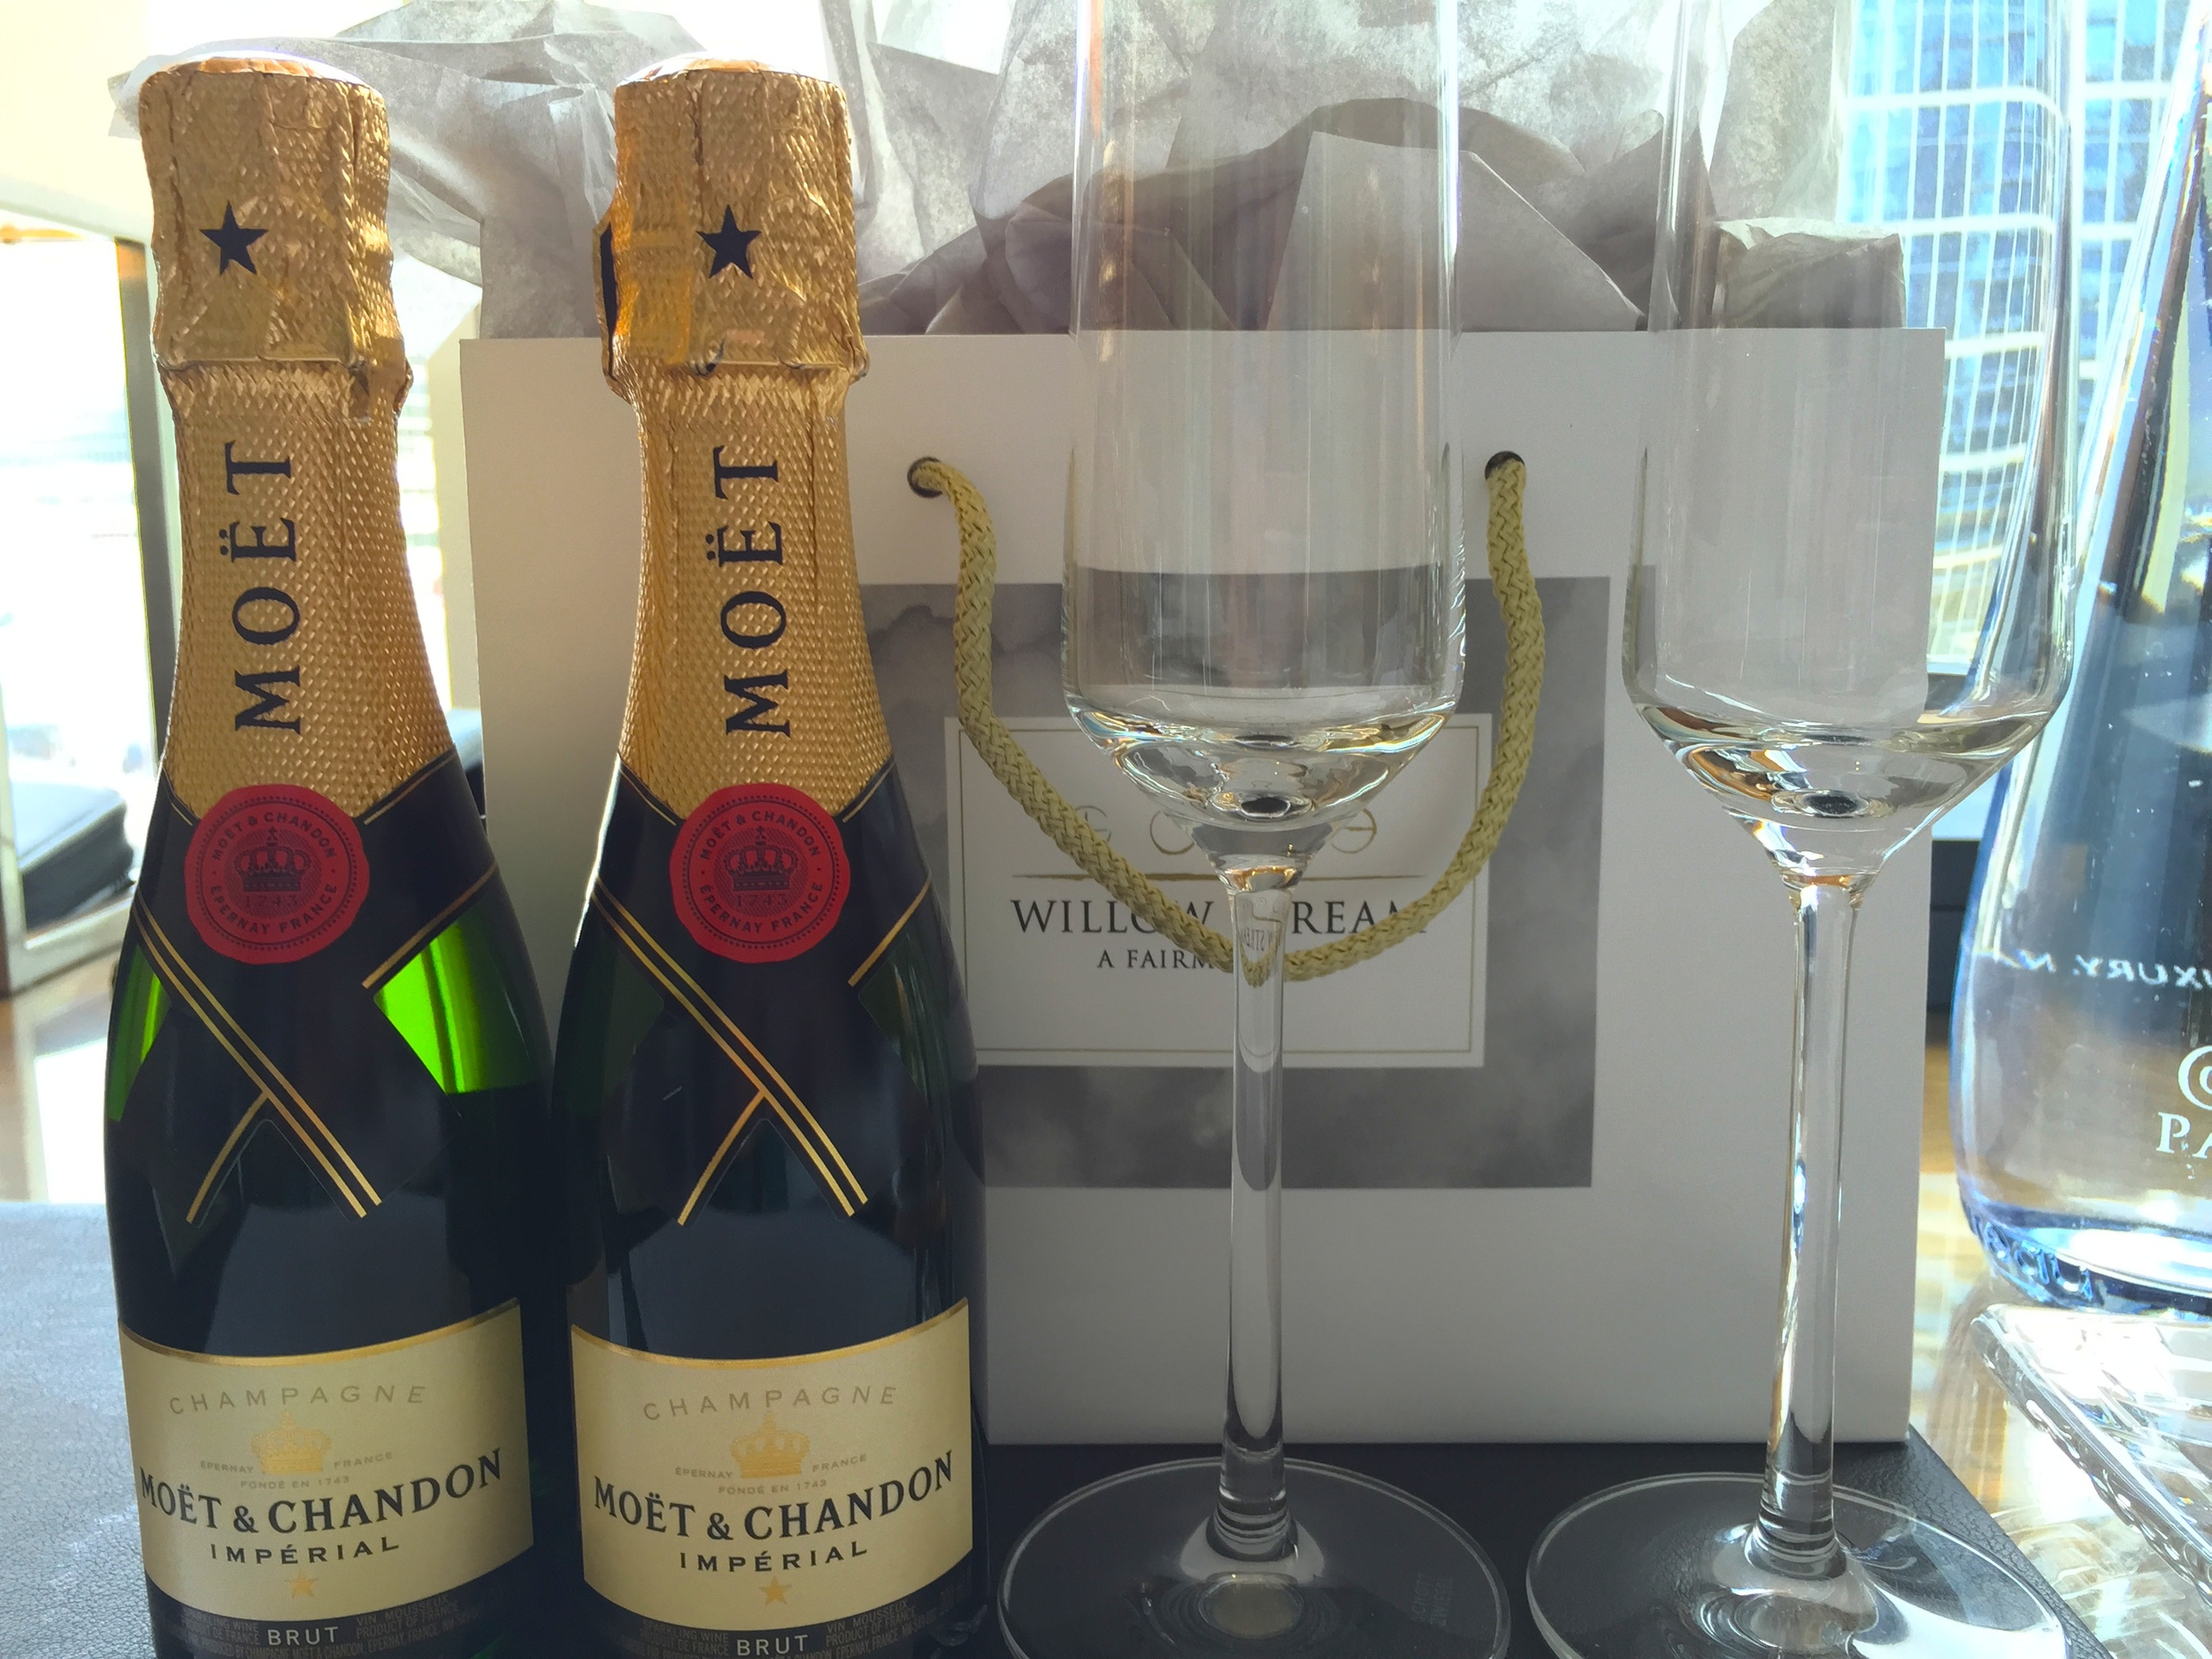 Dear Moët & Chandon, thank you for being one of the race sponsors. Sincerely, the Champagne-loving Trip Stylers.